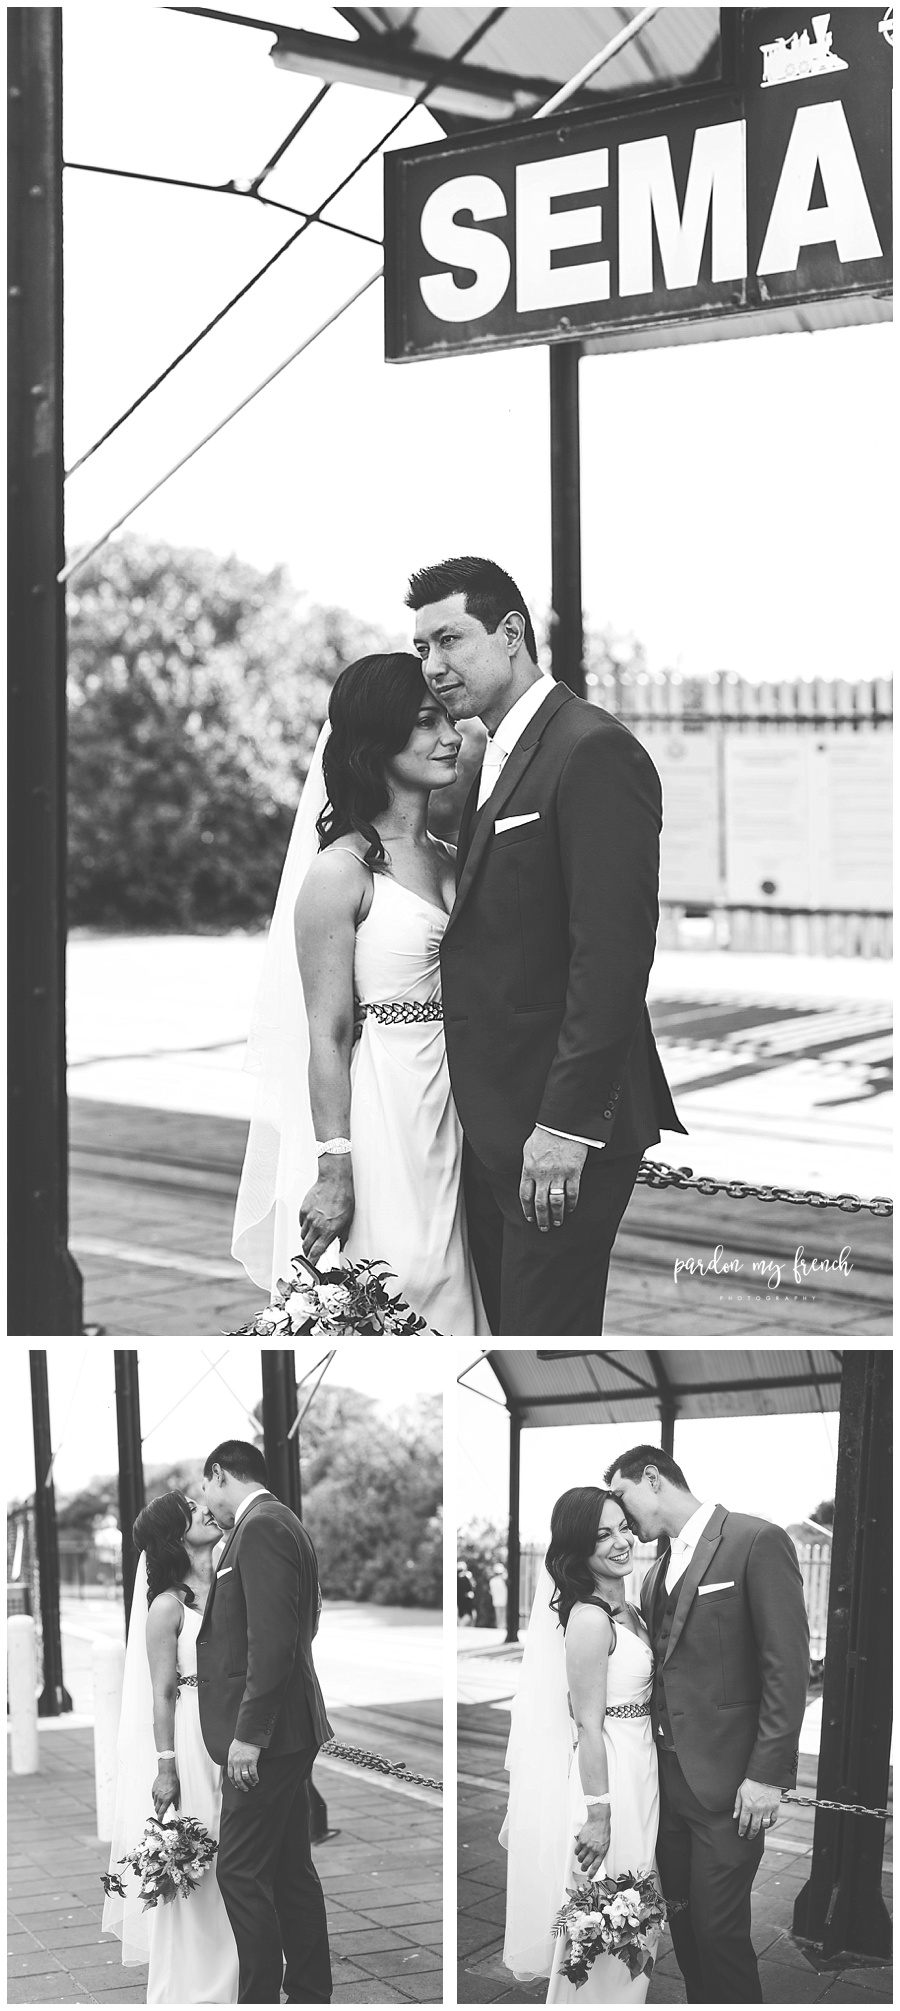 Adelaide Wedding Photographer 66.jpg